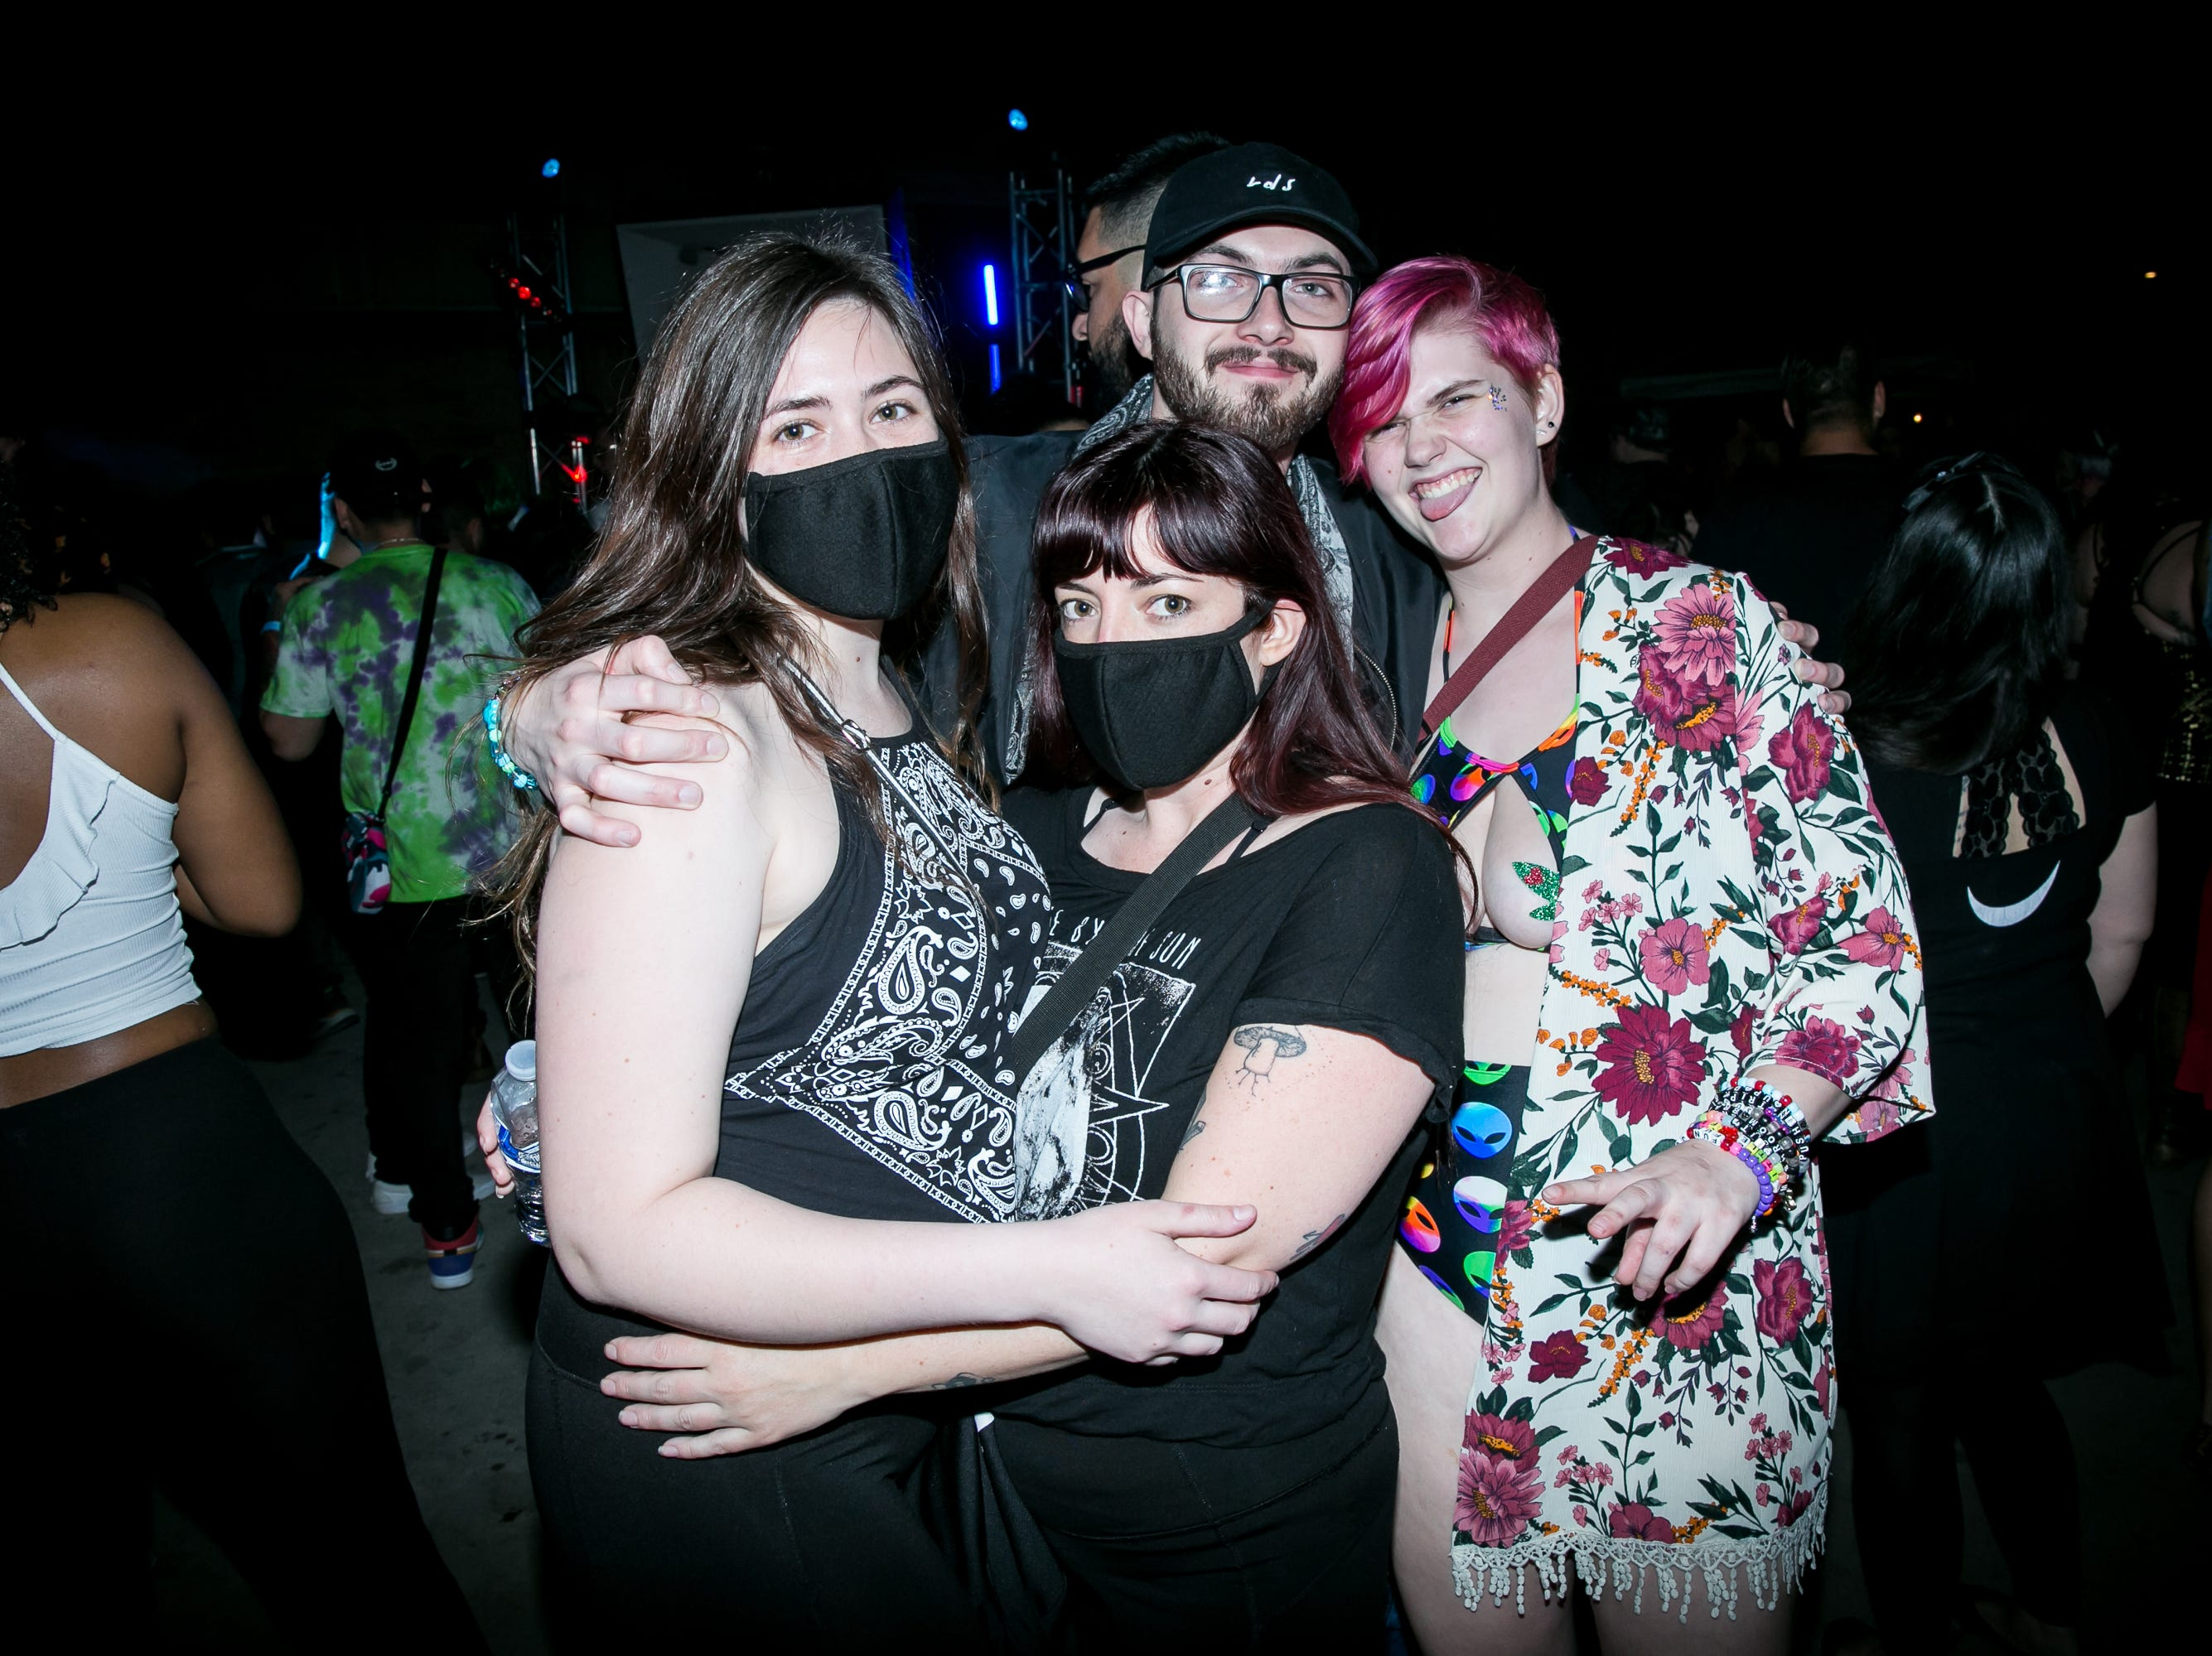 This group had fun at the Full Moon Festival at The Pressroom on March 23, 2019.